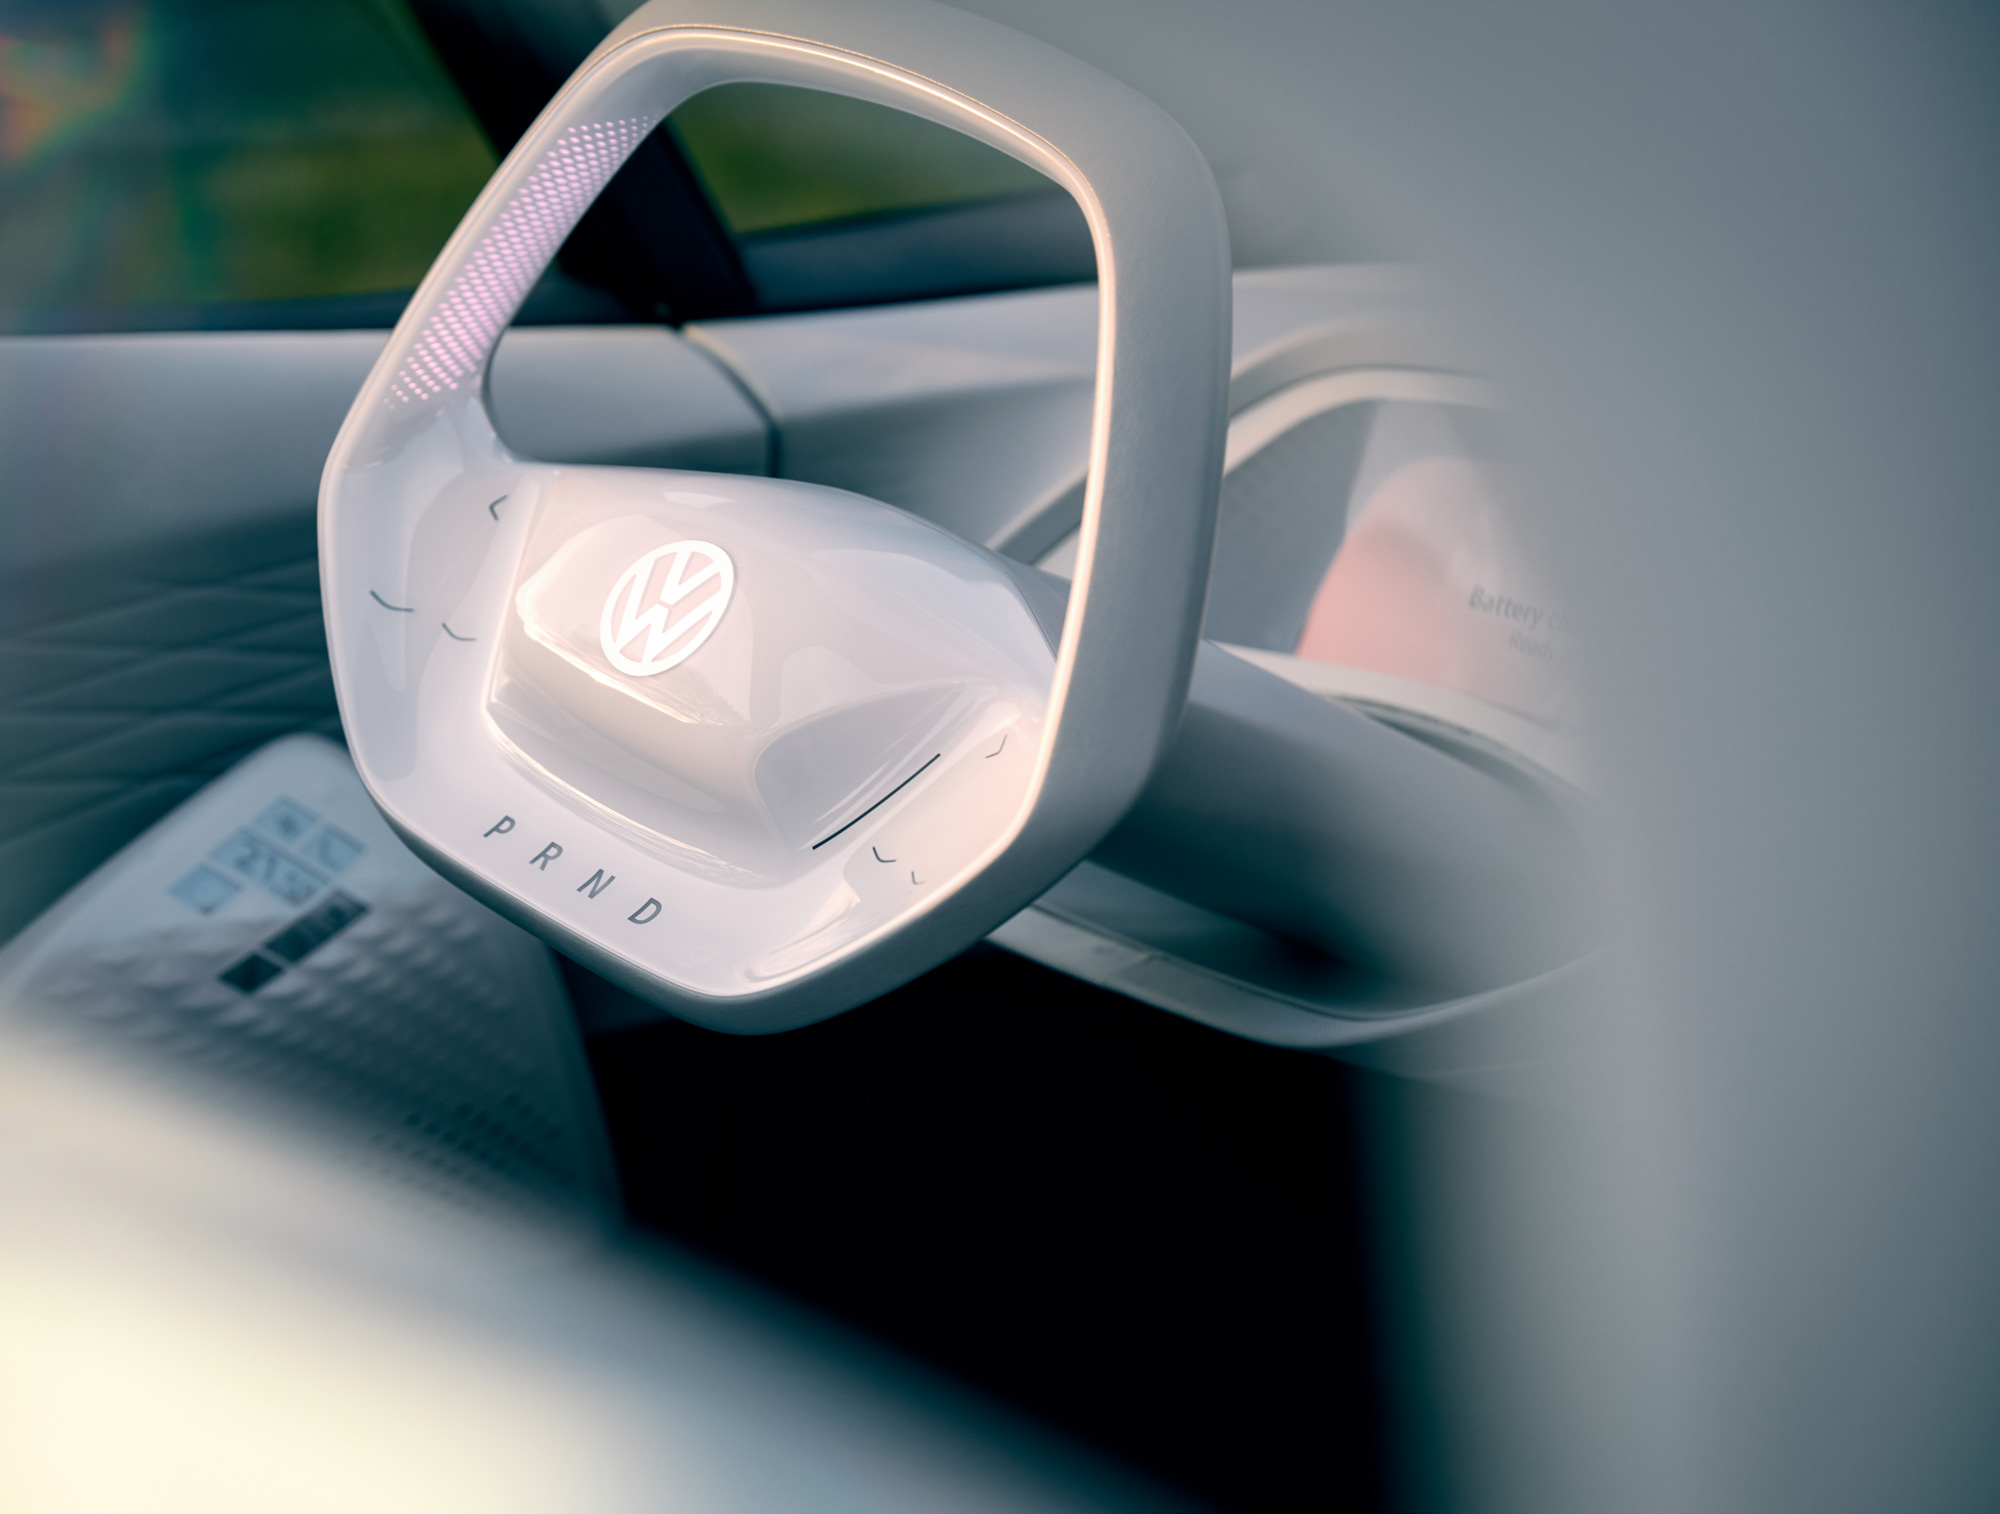 The steering wheel of the ID. concept car.